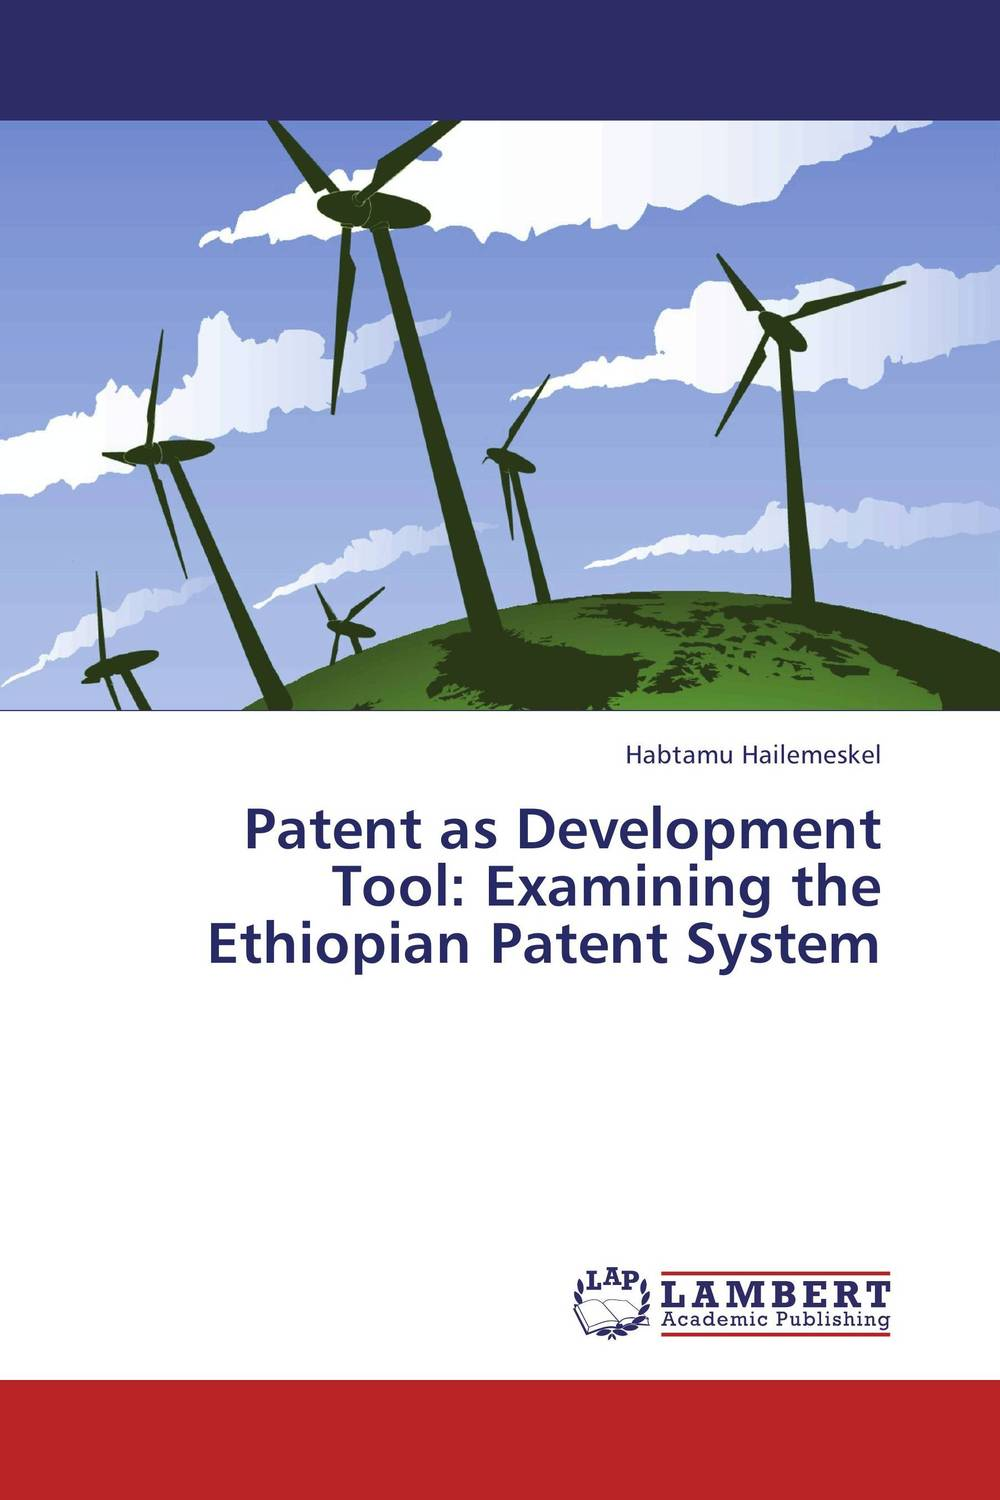 Patent as Development Tool: Examining the Ethiopian Patent System foreign policy as a means for advancing human rights